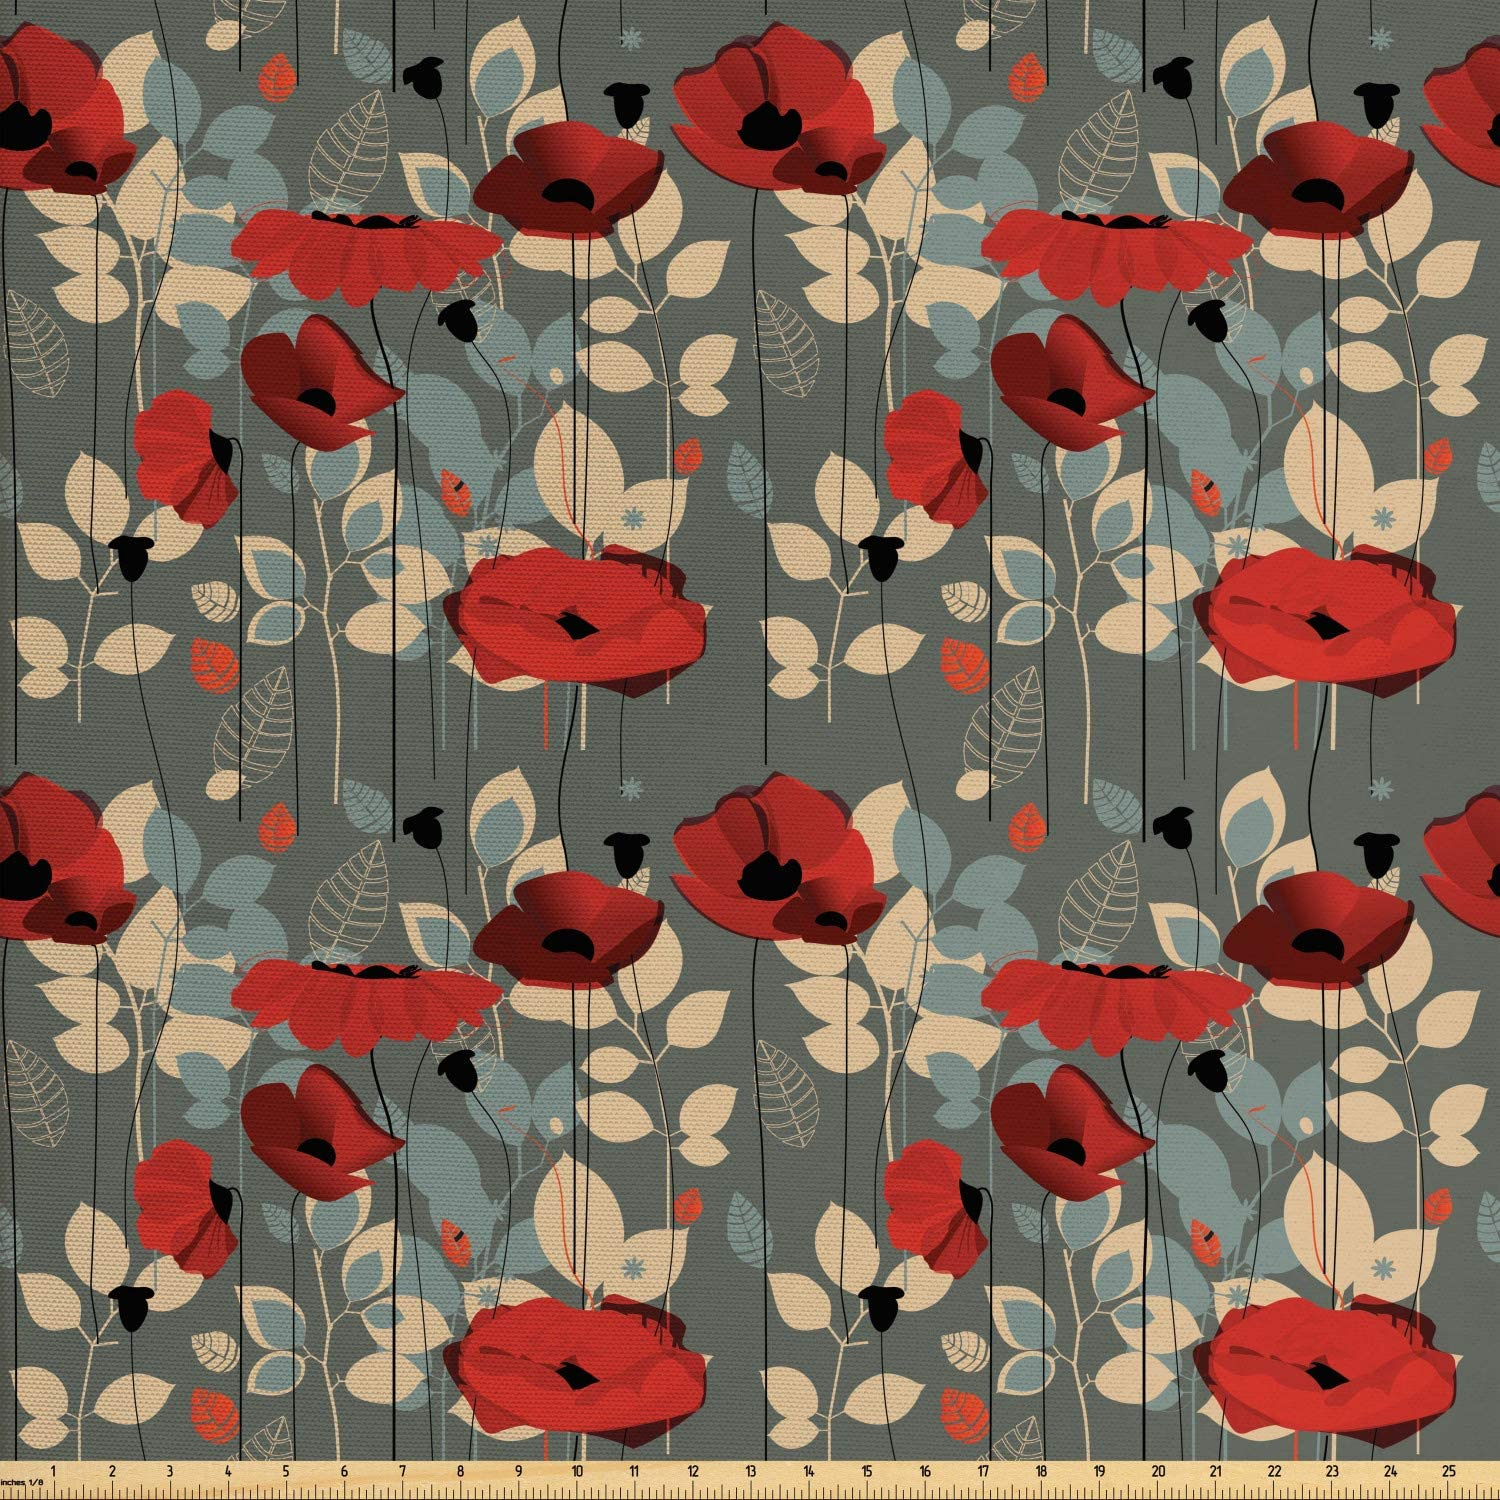 Ambesonne Poppy Fabric by The Yard, Abstraction of a Growing Floral Garden Leaves Botanical Modern Nature Display, Decorative Fabric for Upholstery and Home Accents, 2 Yards, Beige Grey